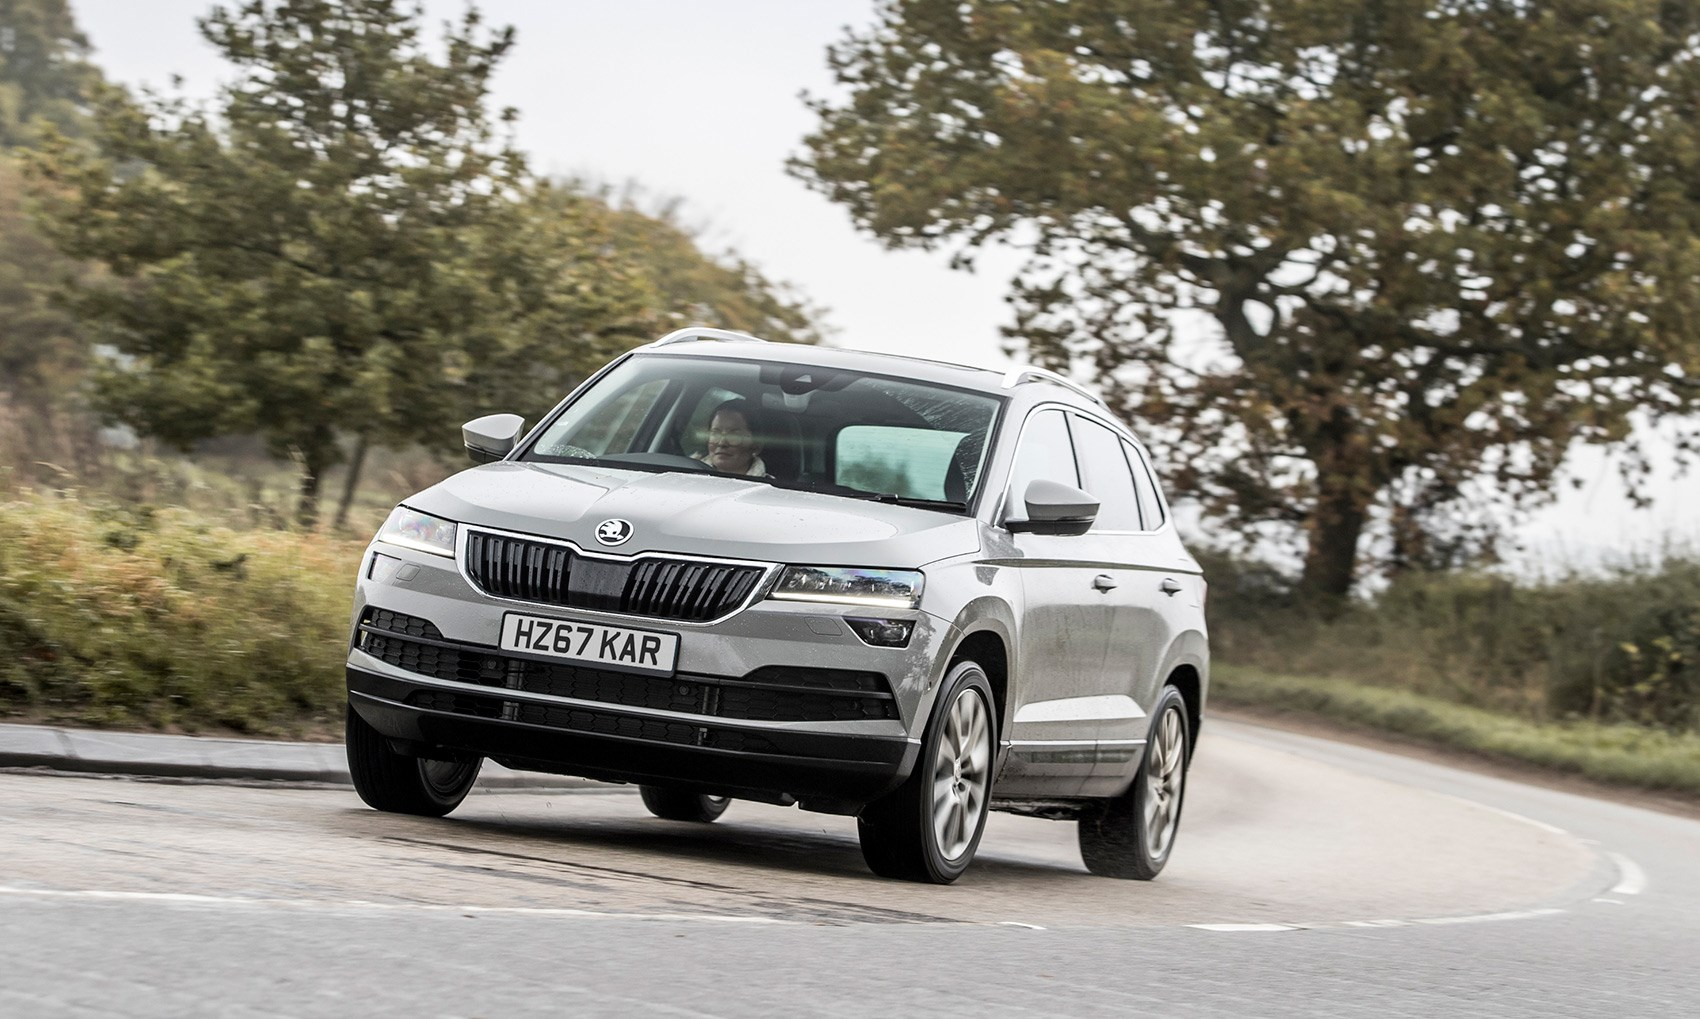 Hyundai Lease Deals >> Skoda Karoq (2017) review: honey, I shrunk the Kodiaq | CAR Magazine